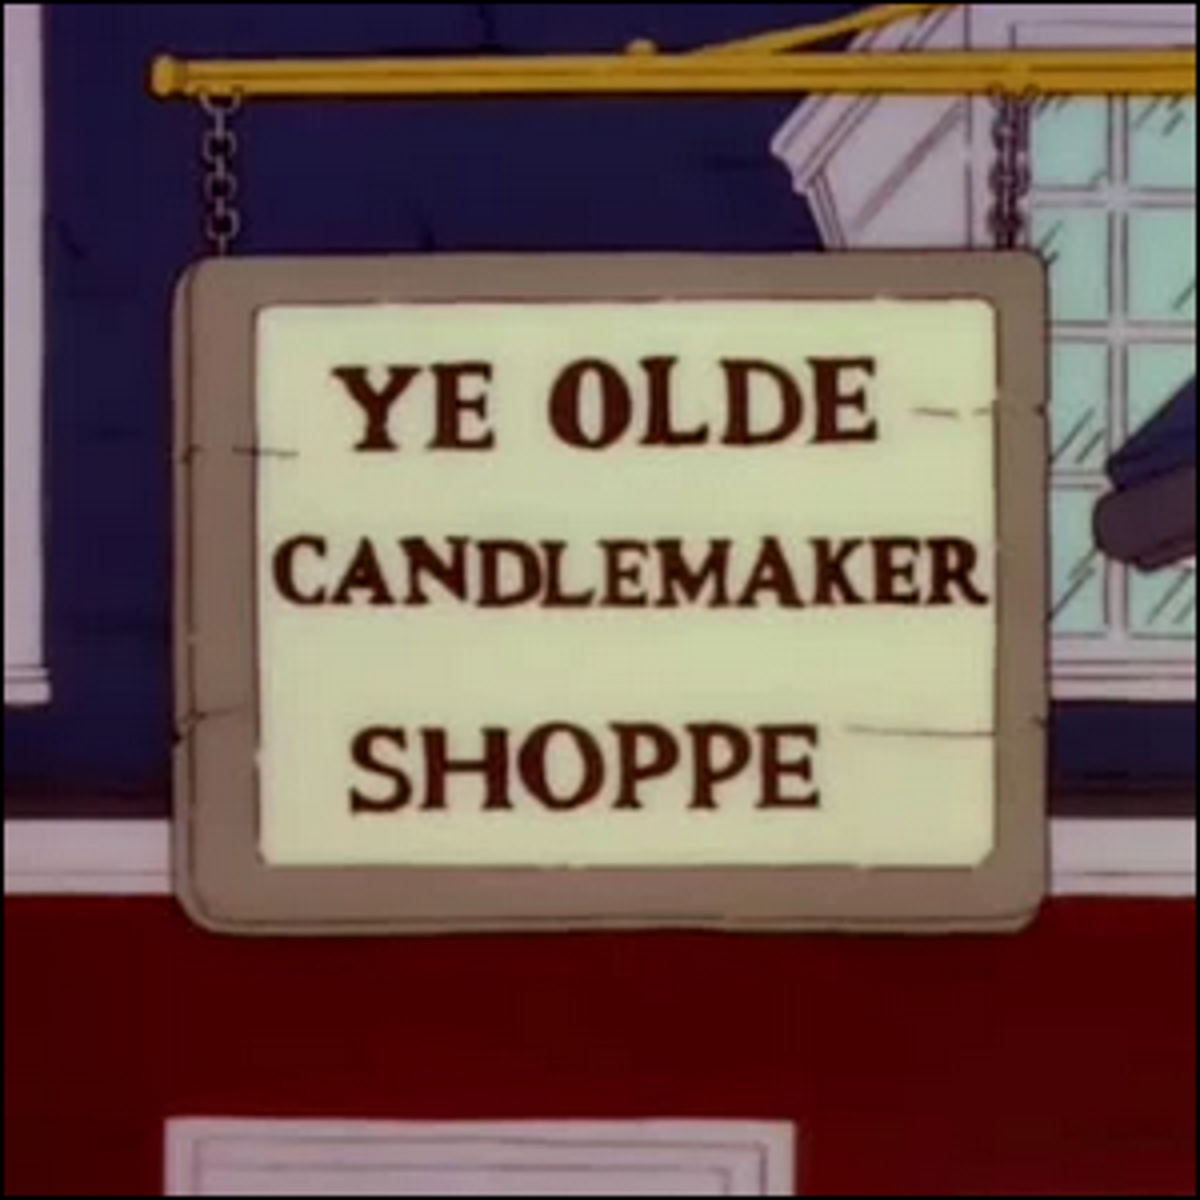 """Hanging sign for the """"Ye Olde Candlemaker Shoppe"""" from the Simpsons."""